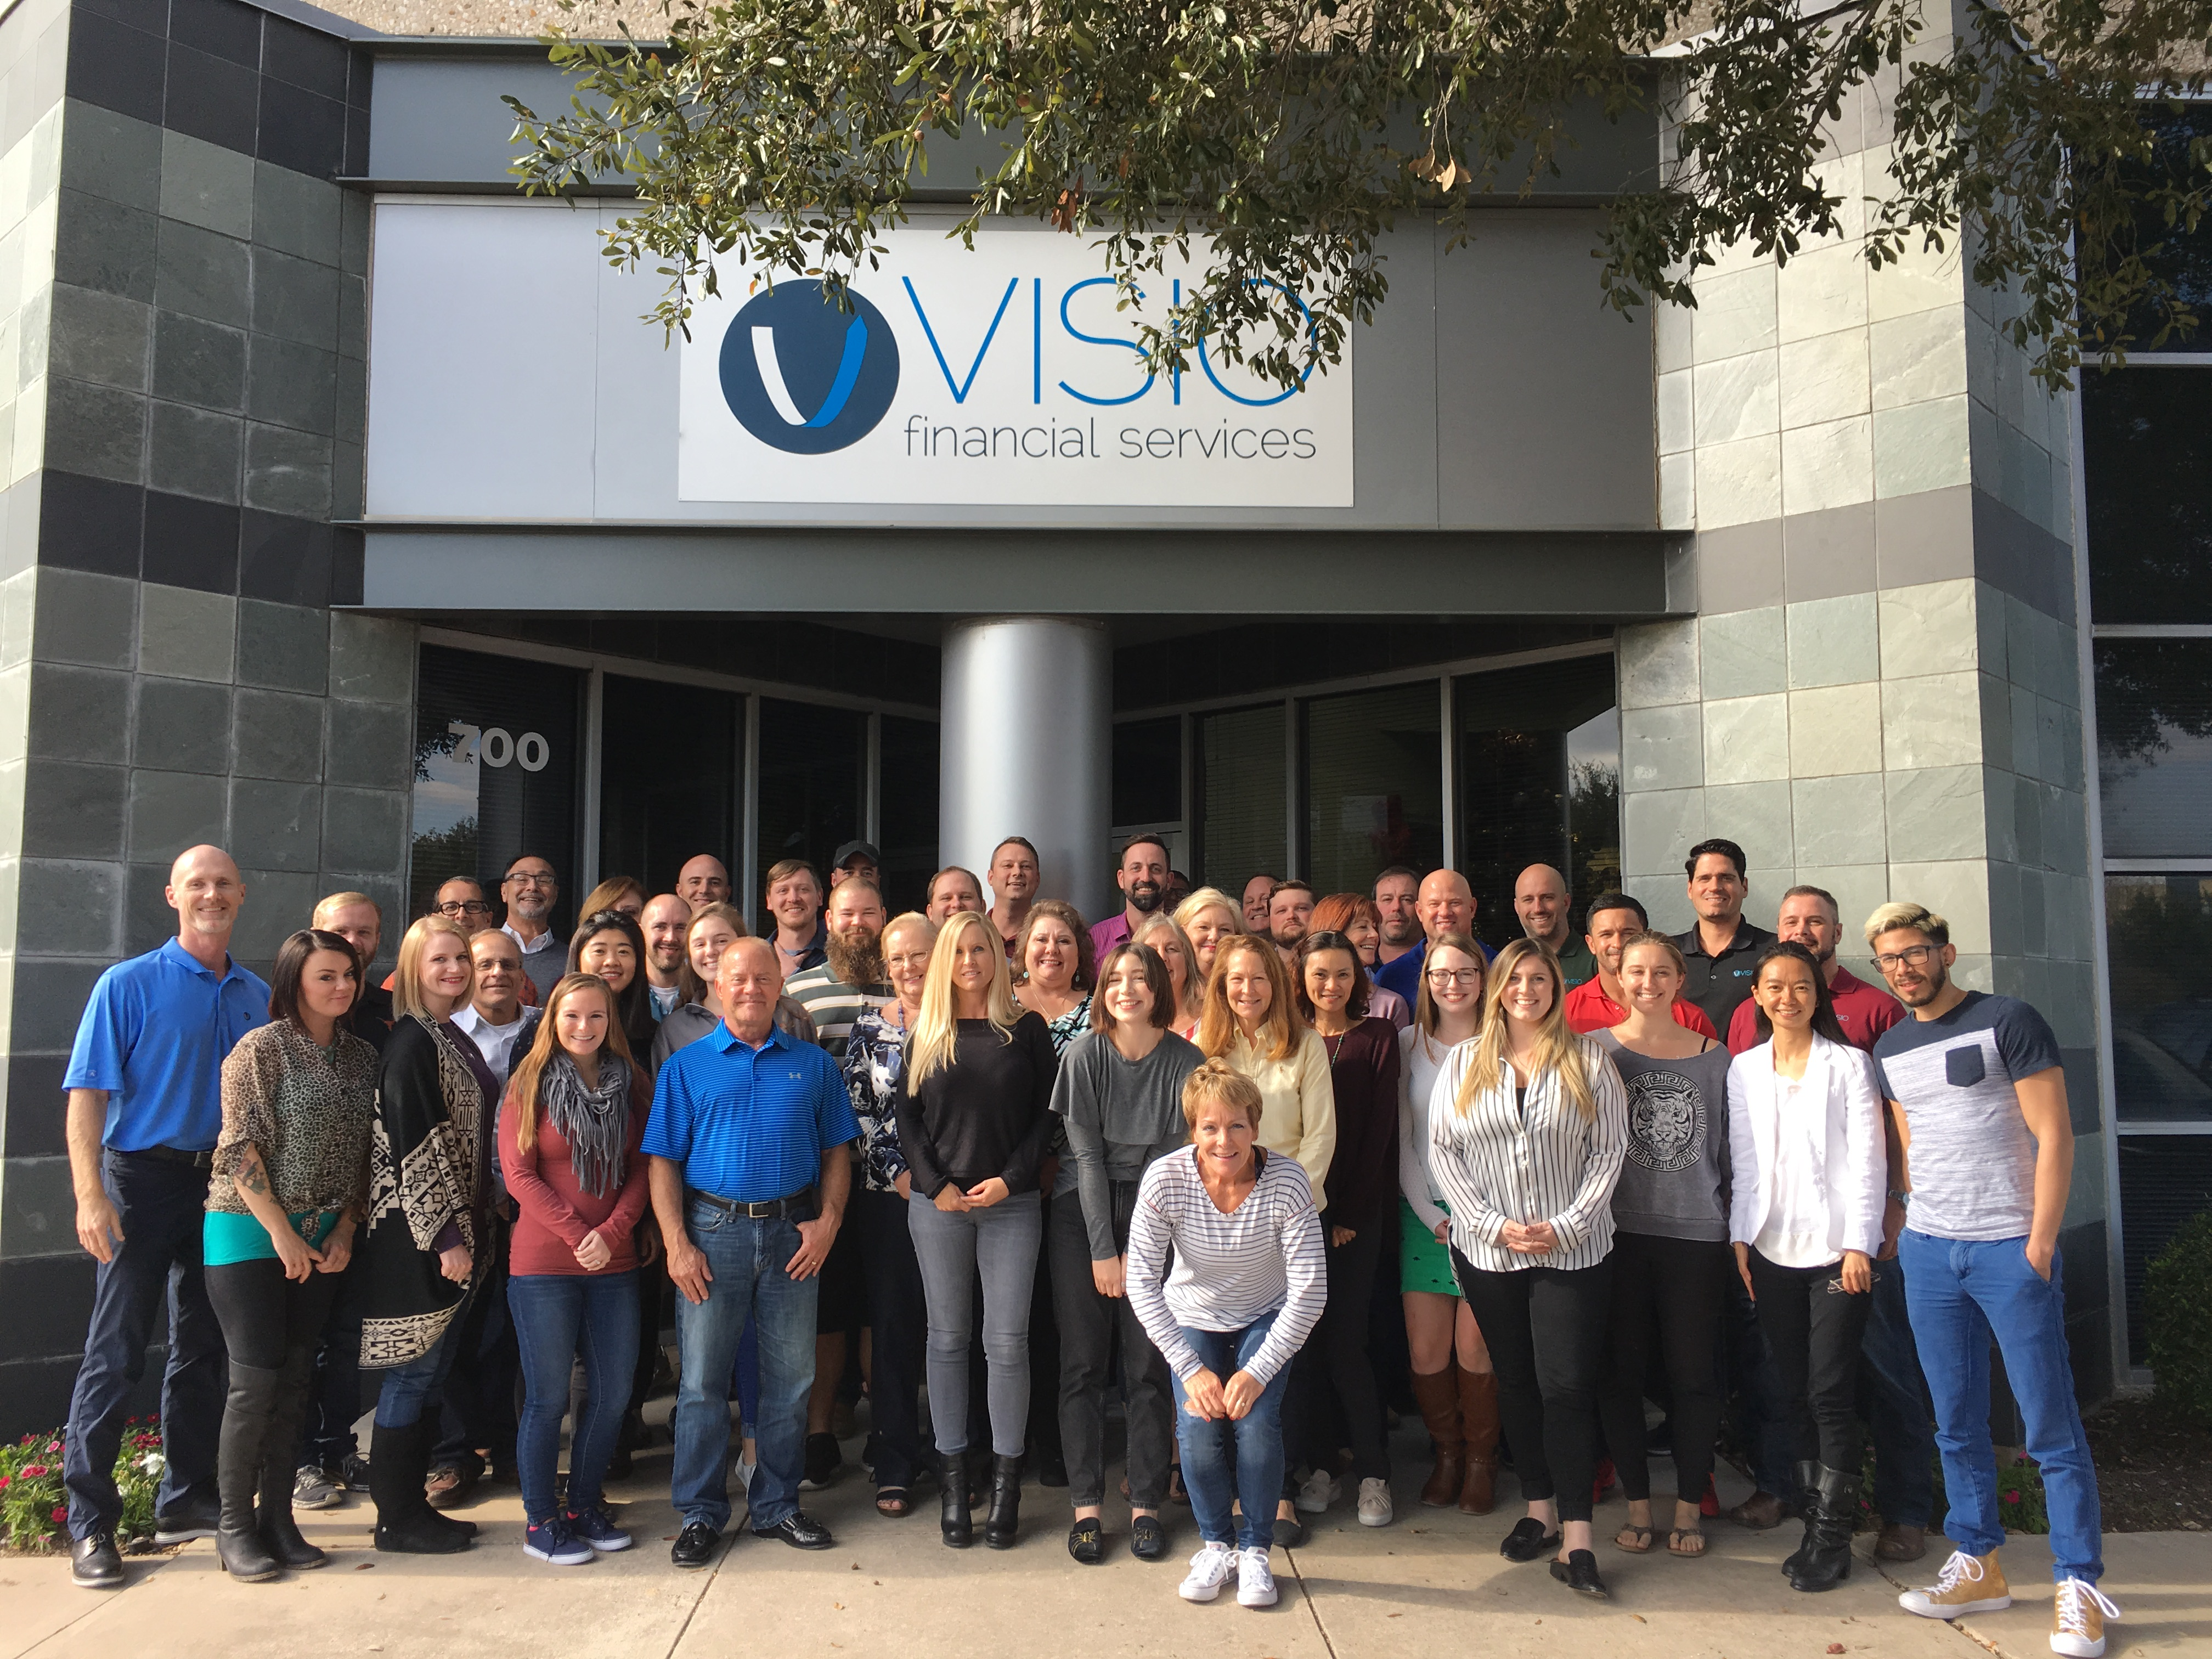 The Visio Lending team is here to help you grow your rental portfolio